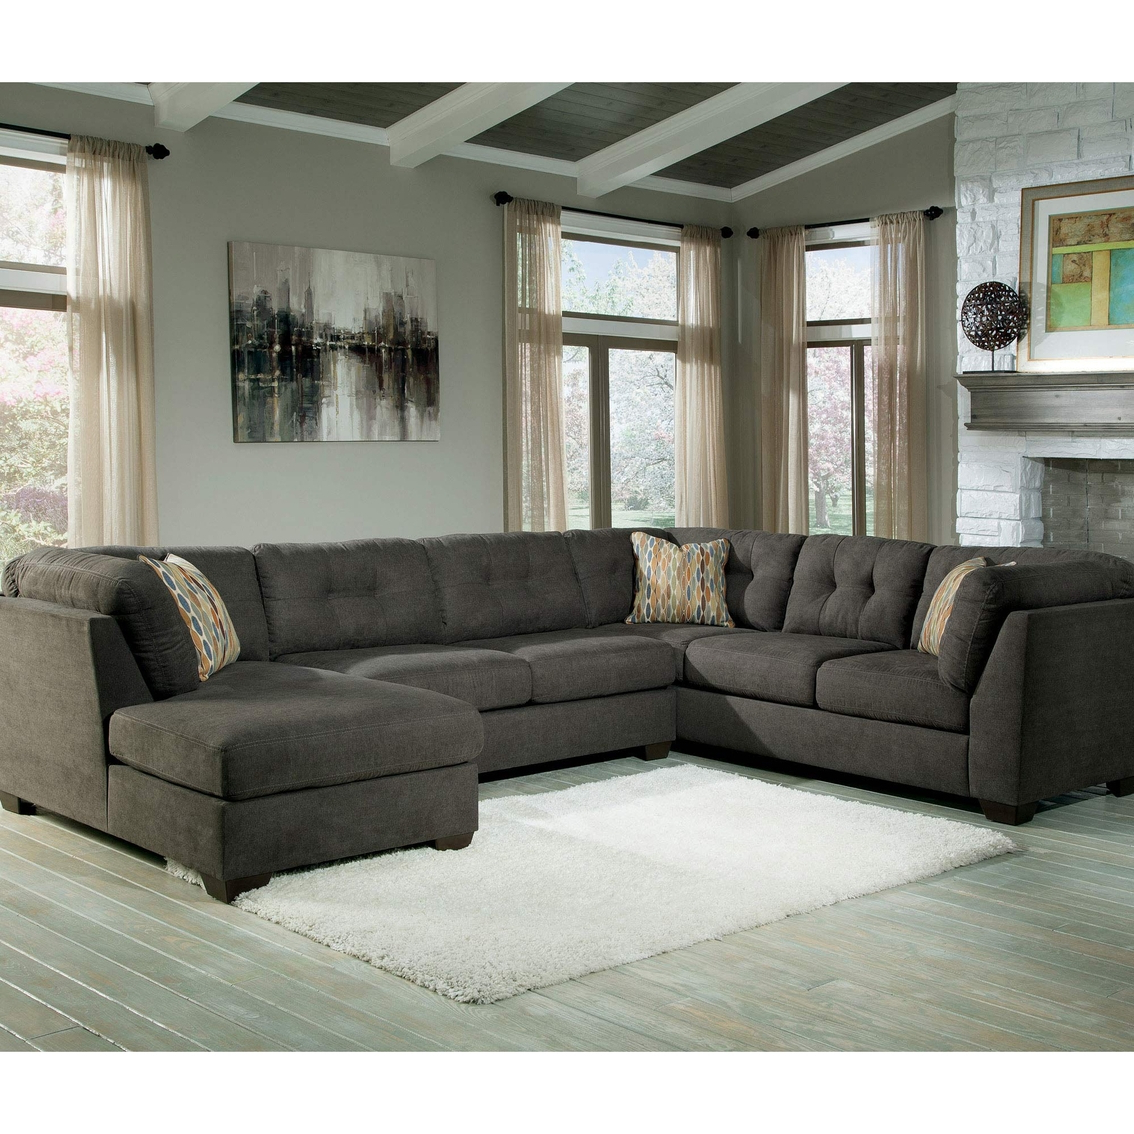 Benchcraft Delta City 3 Pc. Sectional Sofa With Raf Chaise (Gallery 12 of 20)